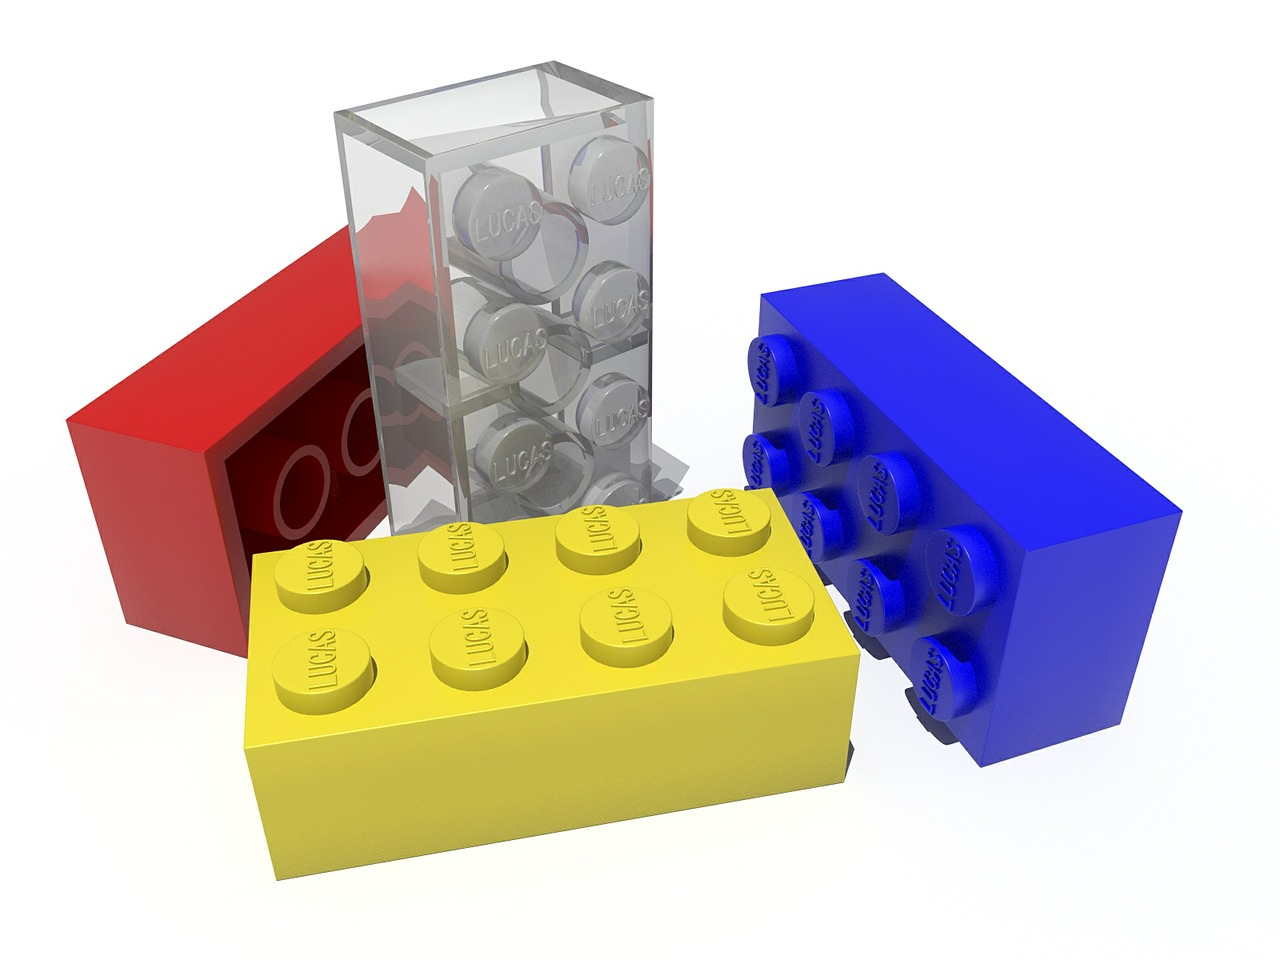 building-blocks-615239_1280.jpg